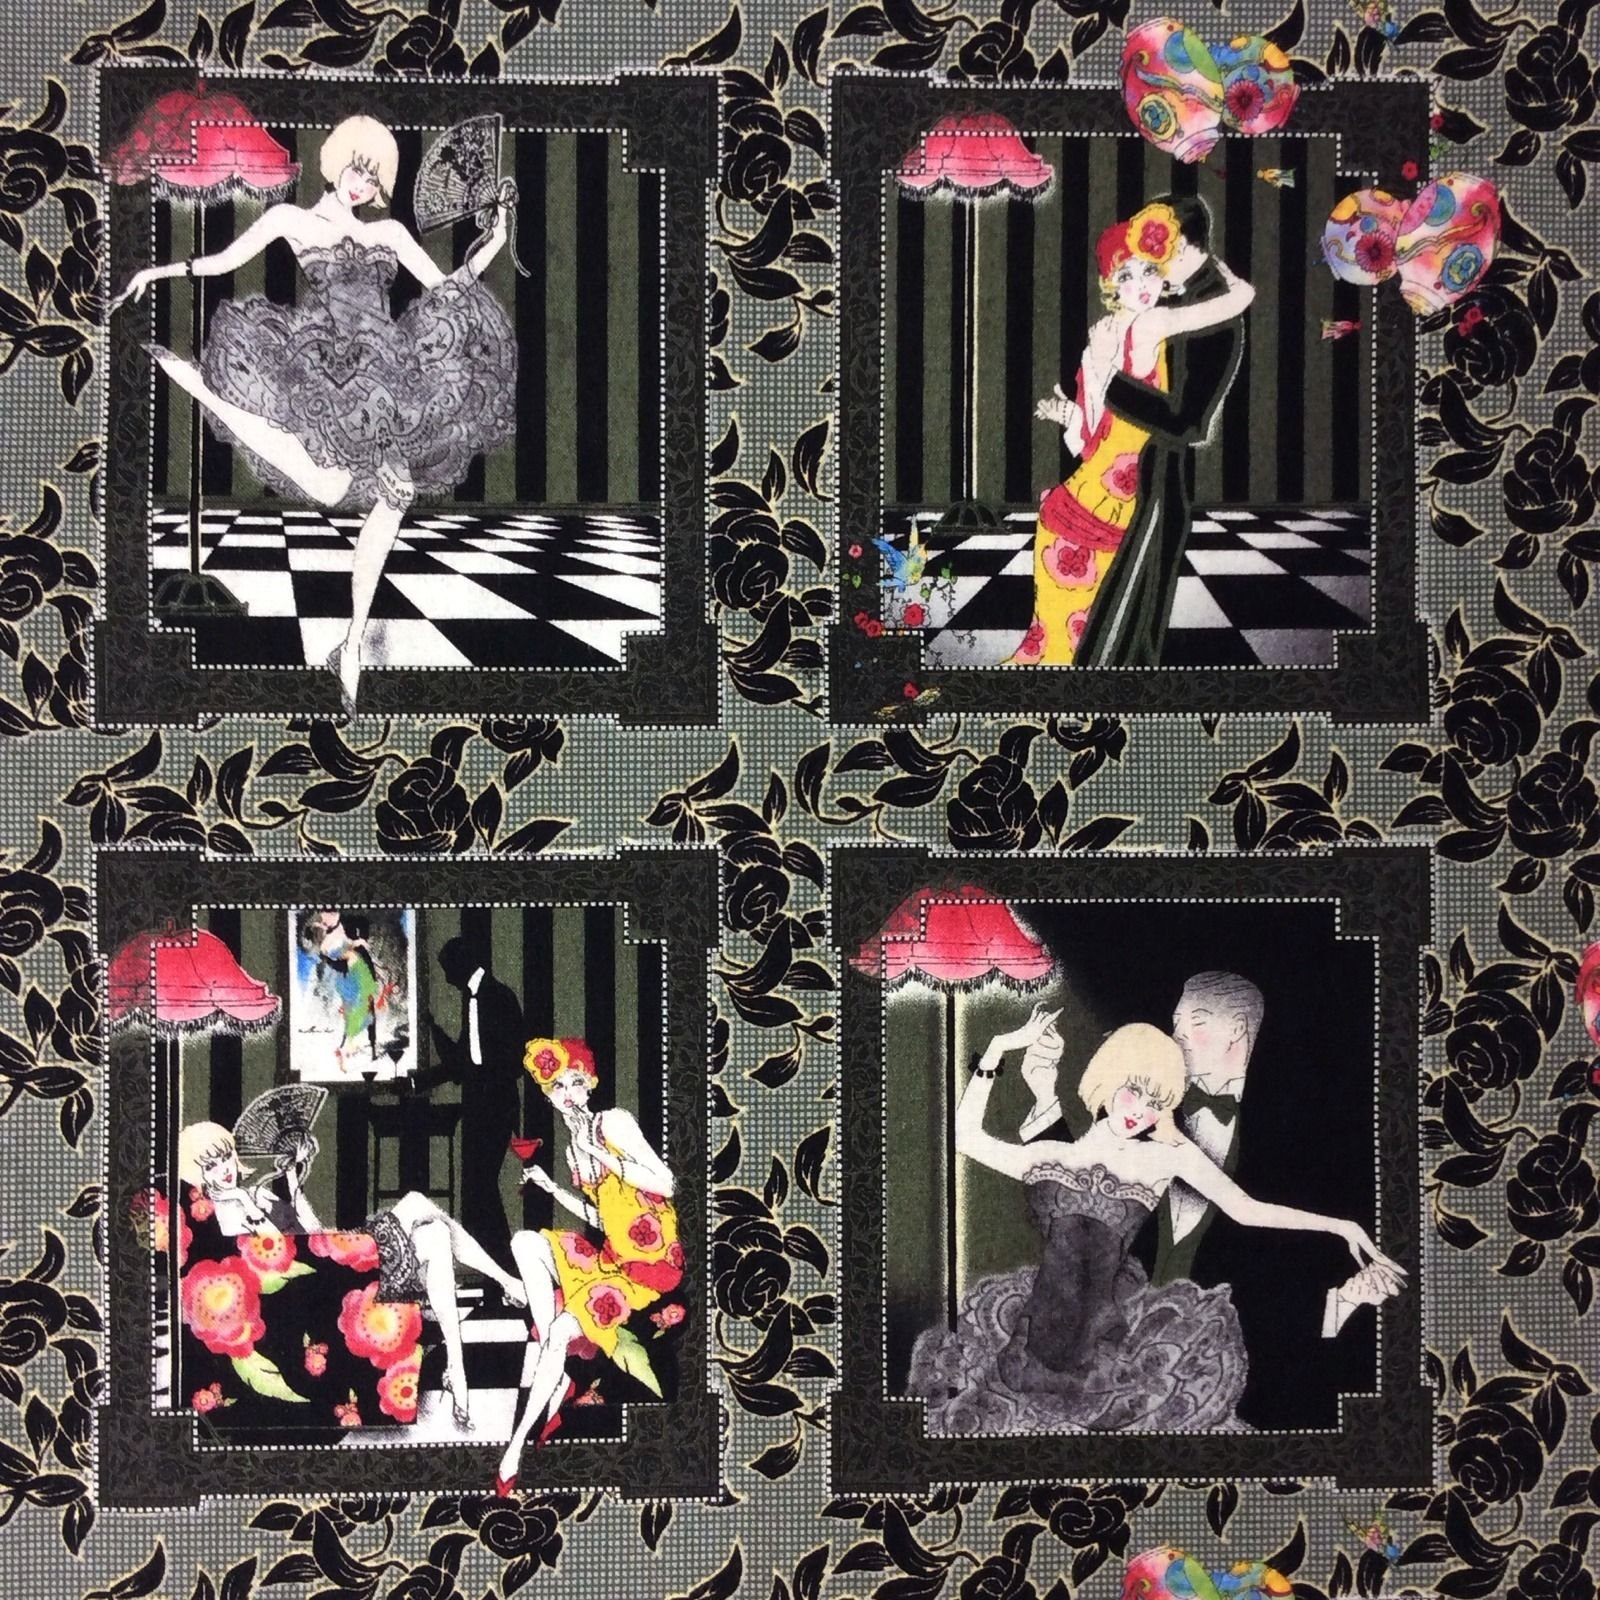 Flappers Dancers Roaring Twenties Sexy Fashion Ladies Romance Courting PANEL Quilt Cotton Quilting Fabric PNL97 FT27